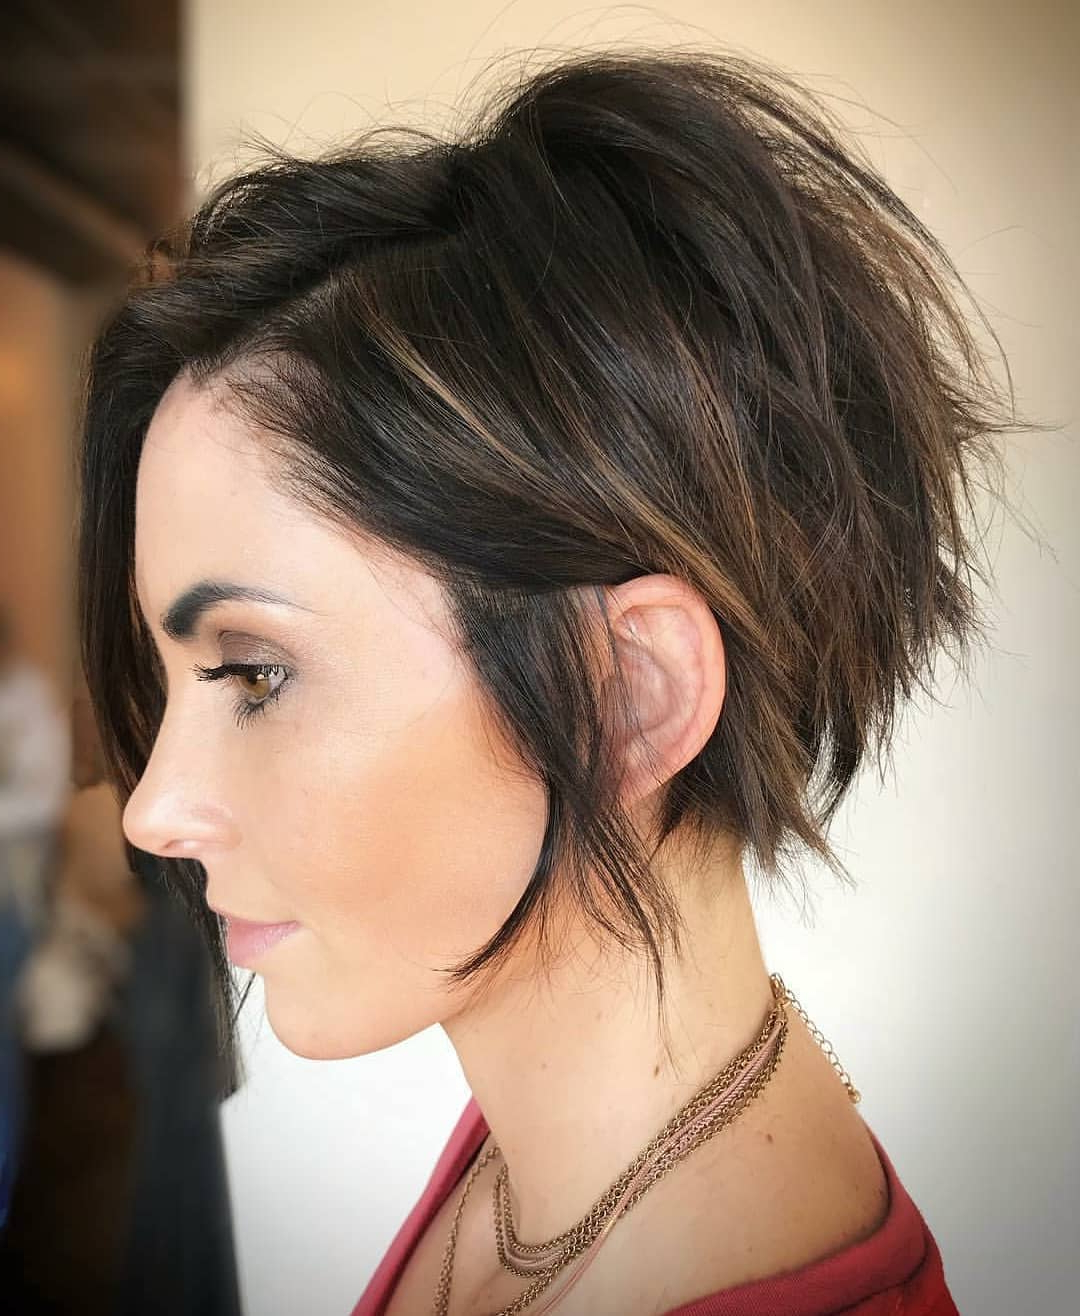 10 Fab Short Hairstyles With Texture & Color, 2018 Women Short Haircuts Pertaining To Posh Spice Short Hairstyles (View 3 of 25)